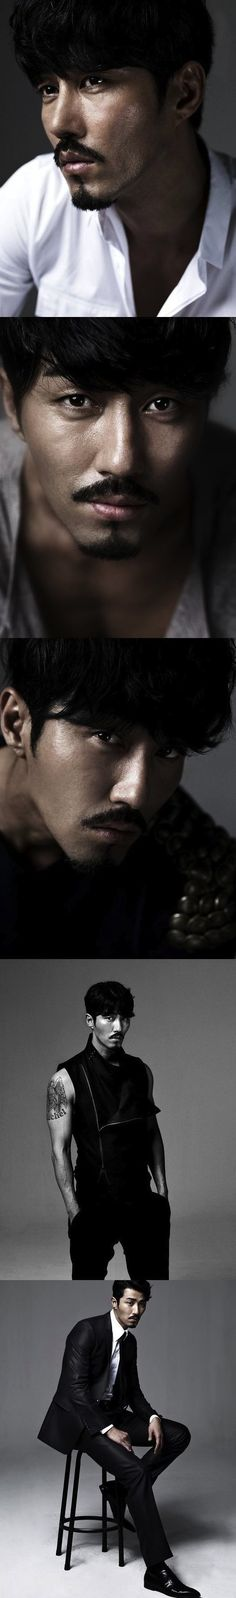 Cha Seung-won (차승원) - Picture @ HanCinema :: The Korean Movie and Drama Database